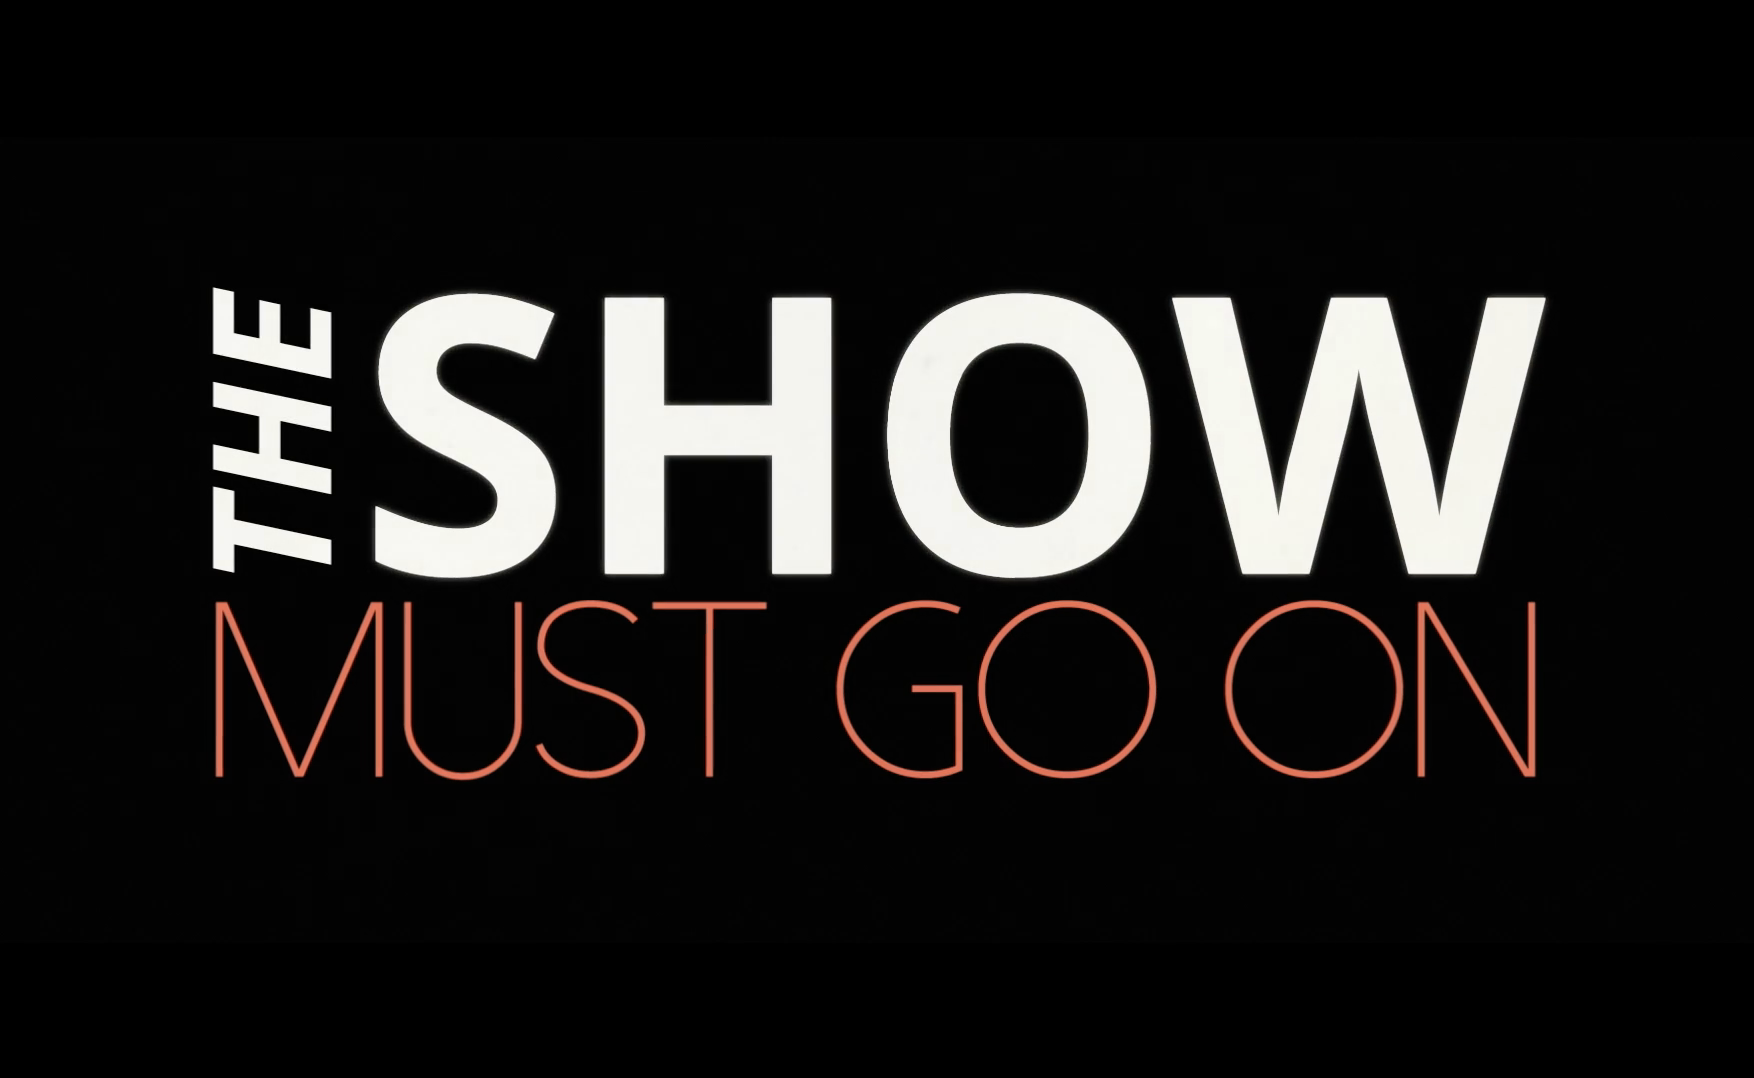 First look of The Show Must Go On!